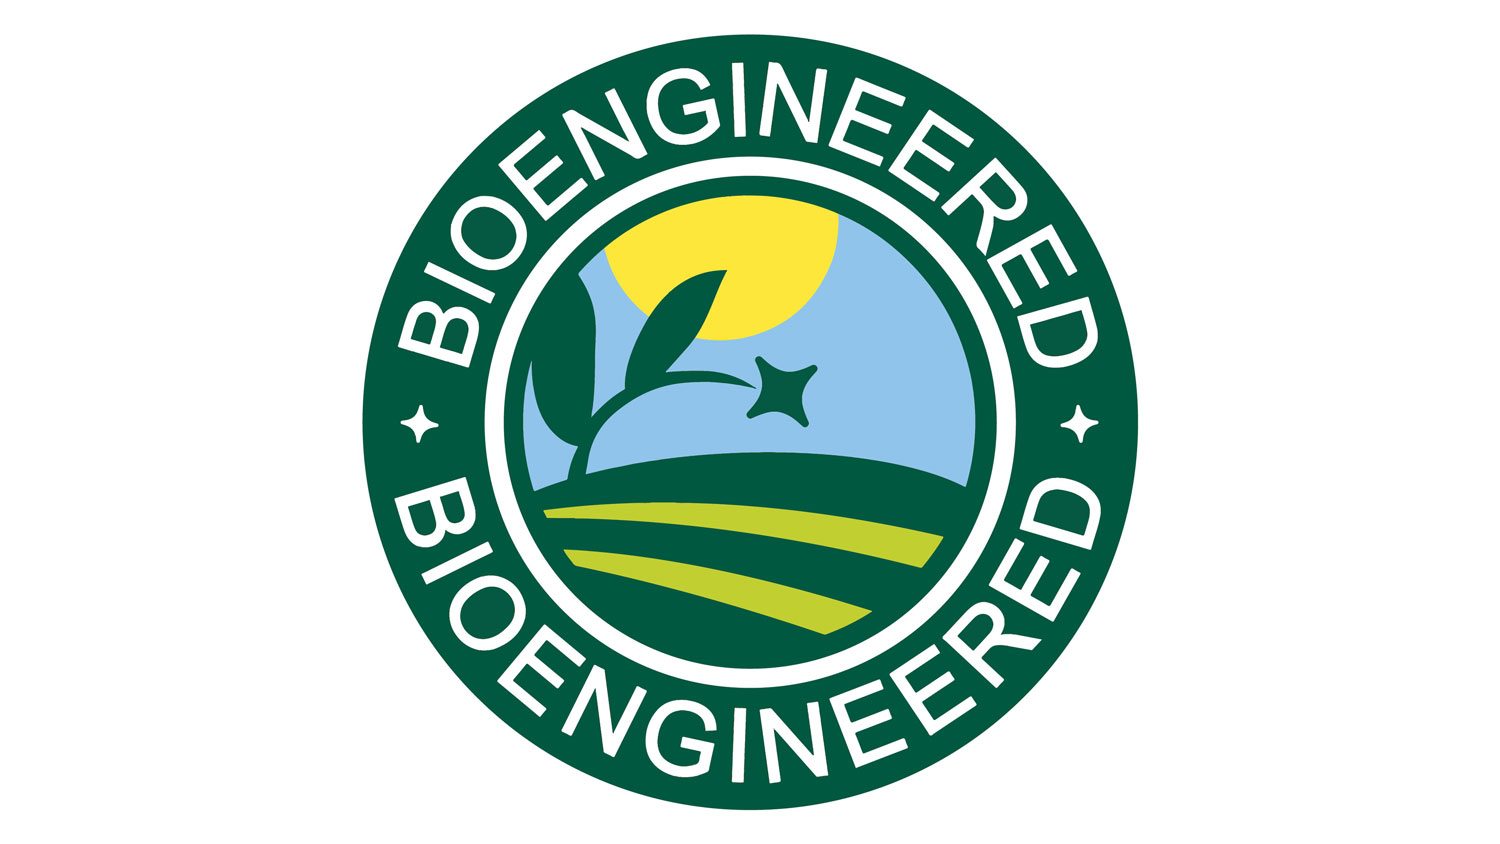 bioenginereed logo usa